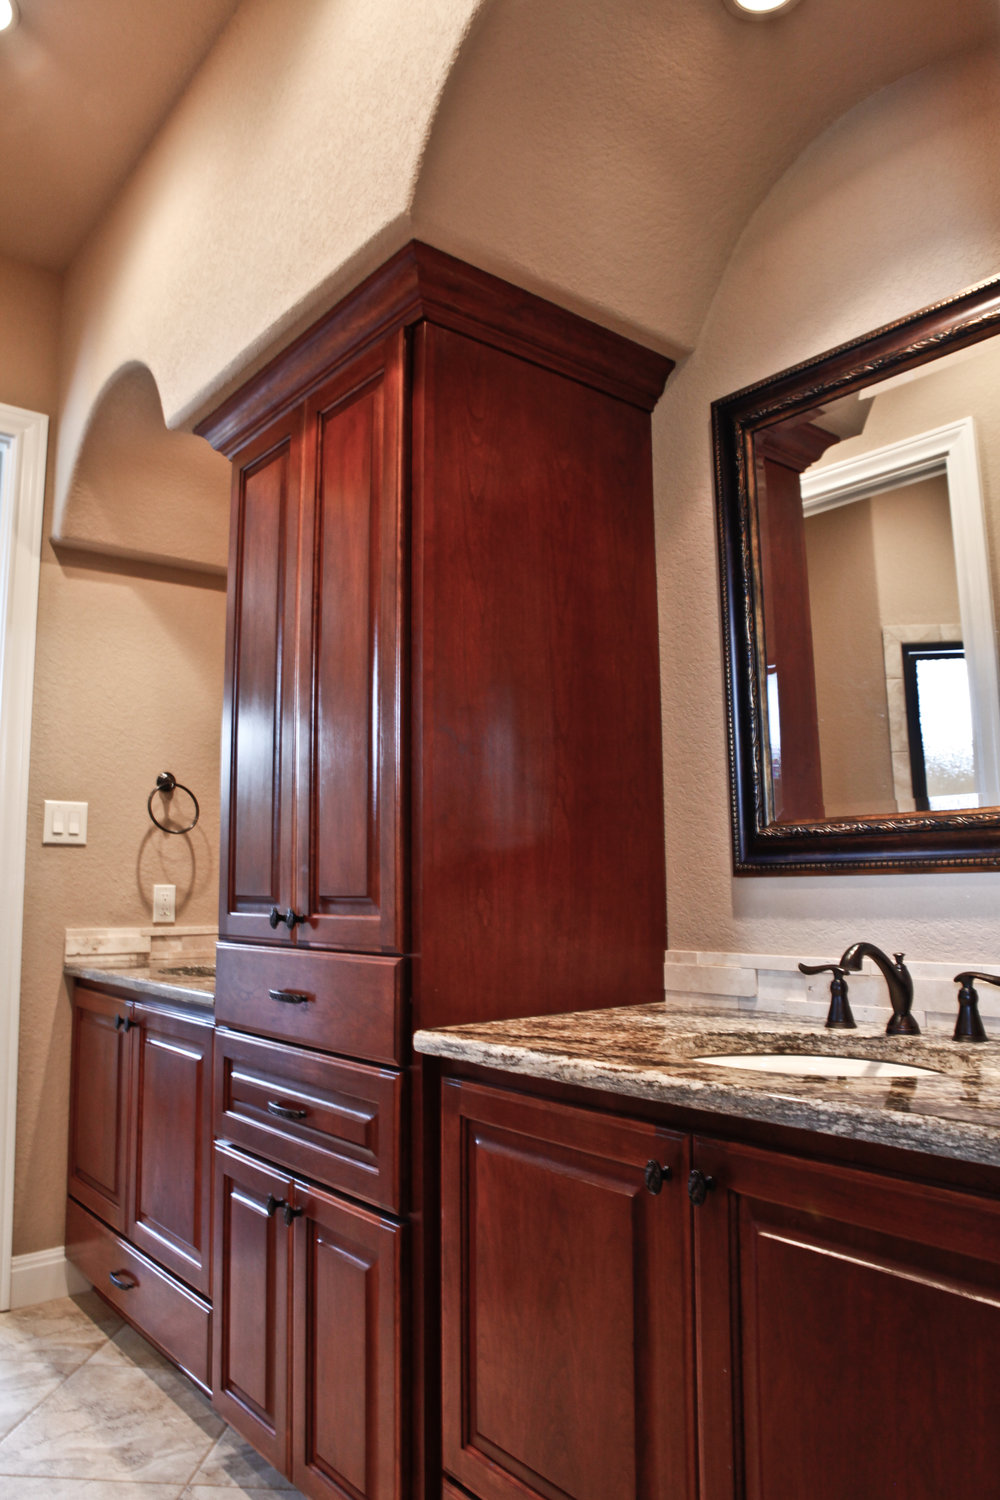 31-bath 4 - sink and vanities.jpg